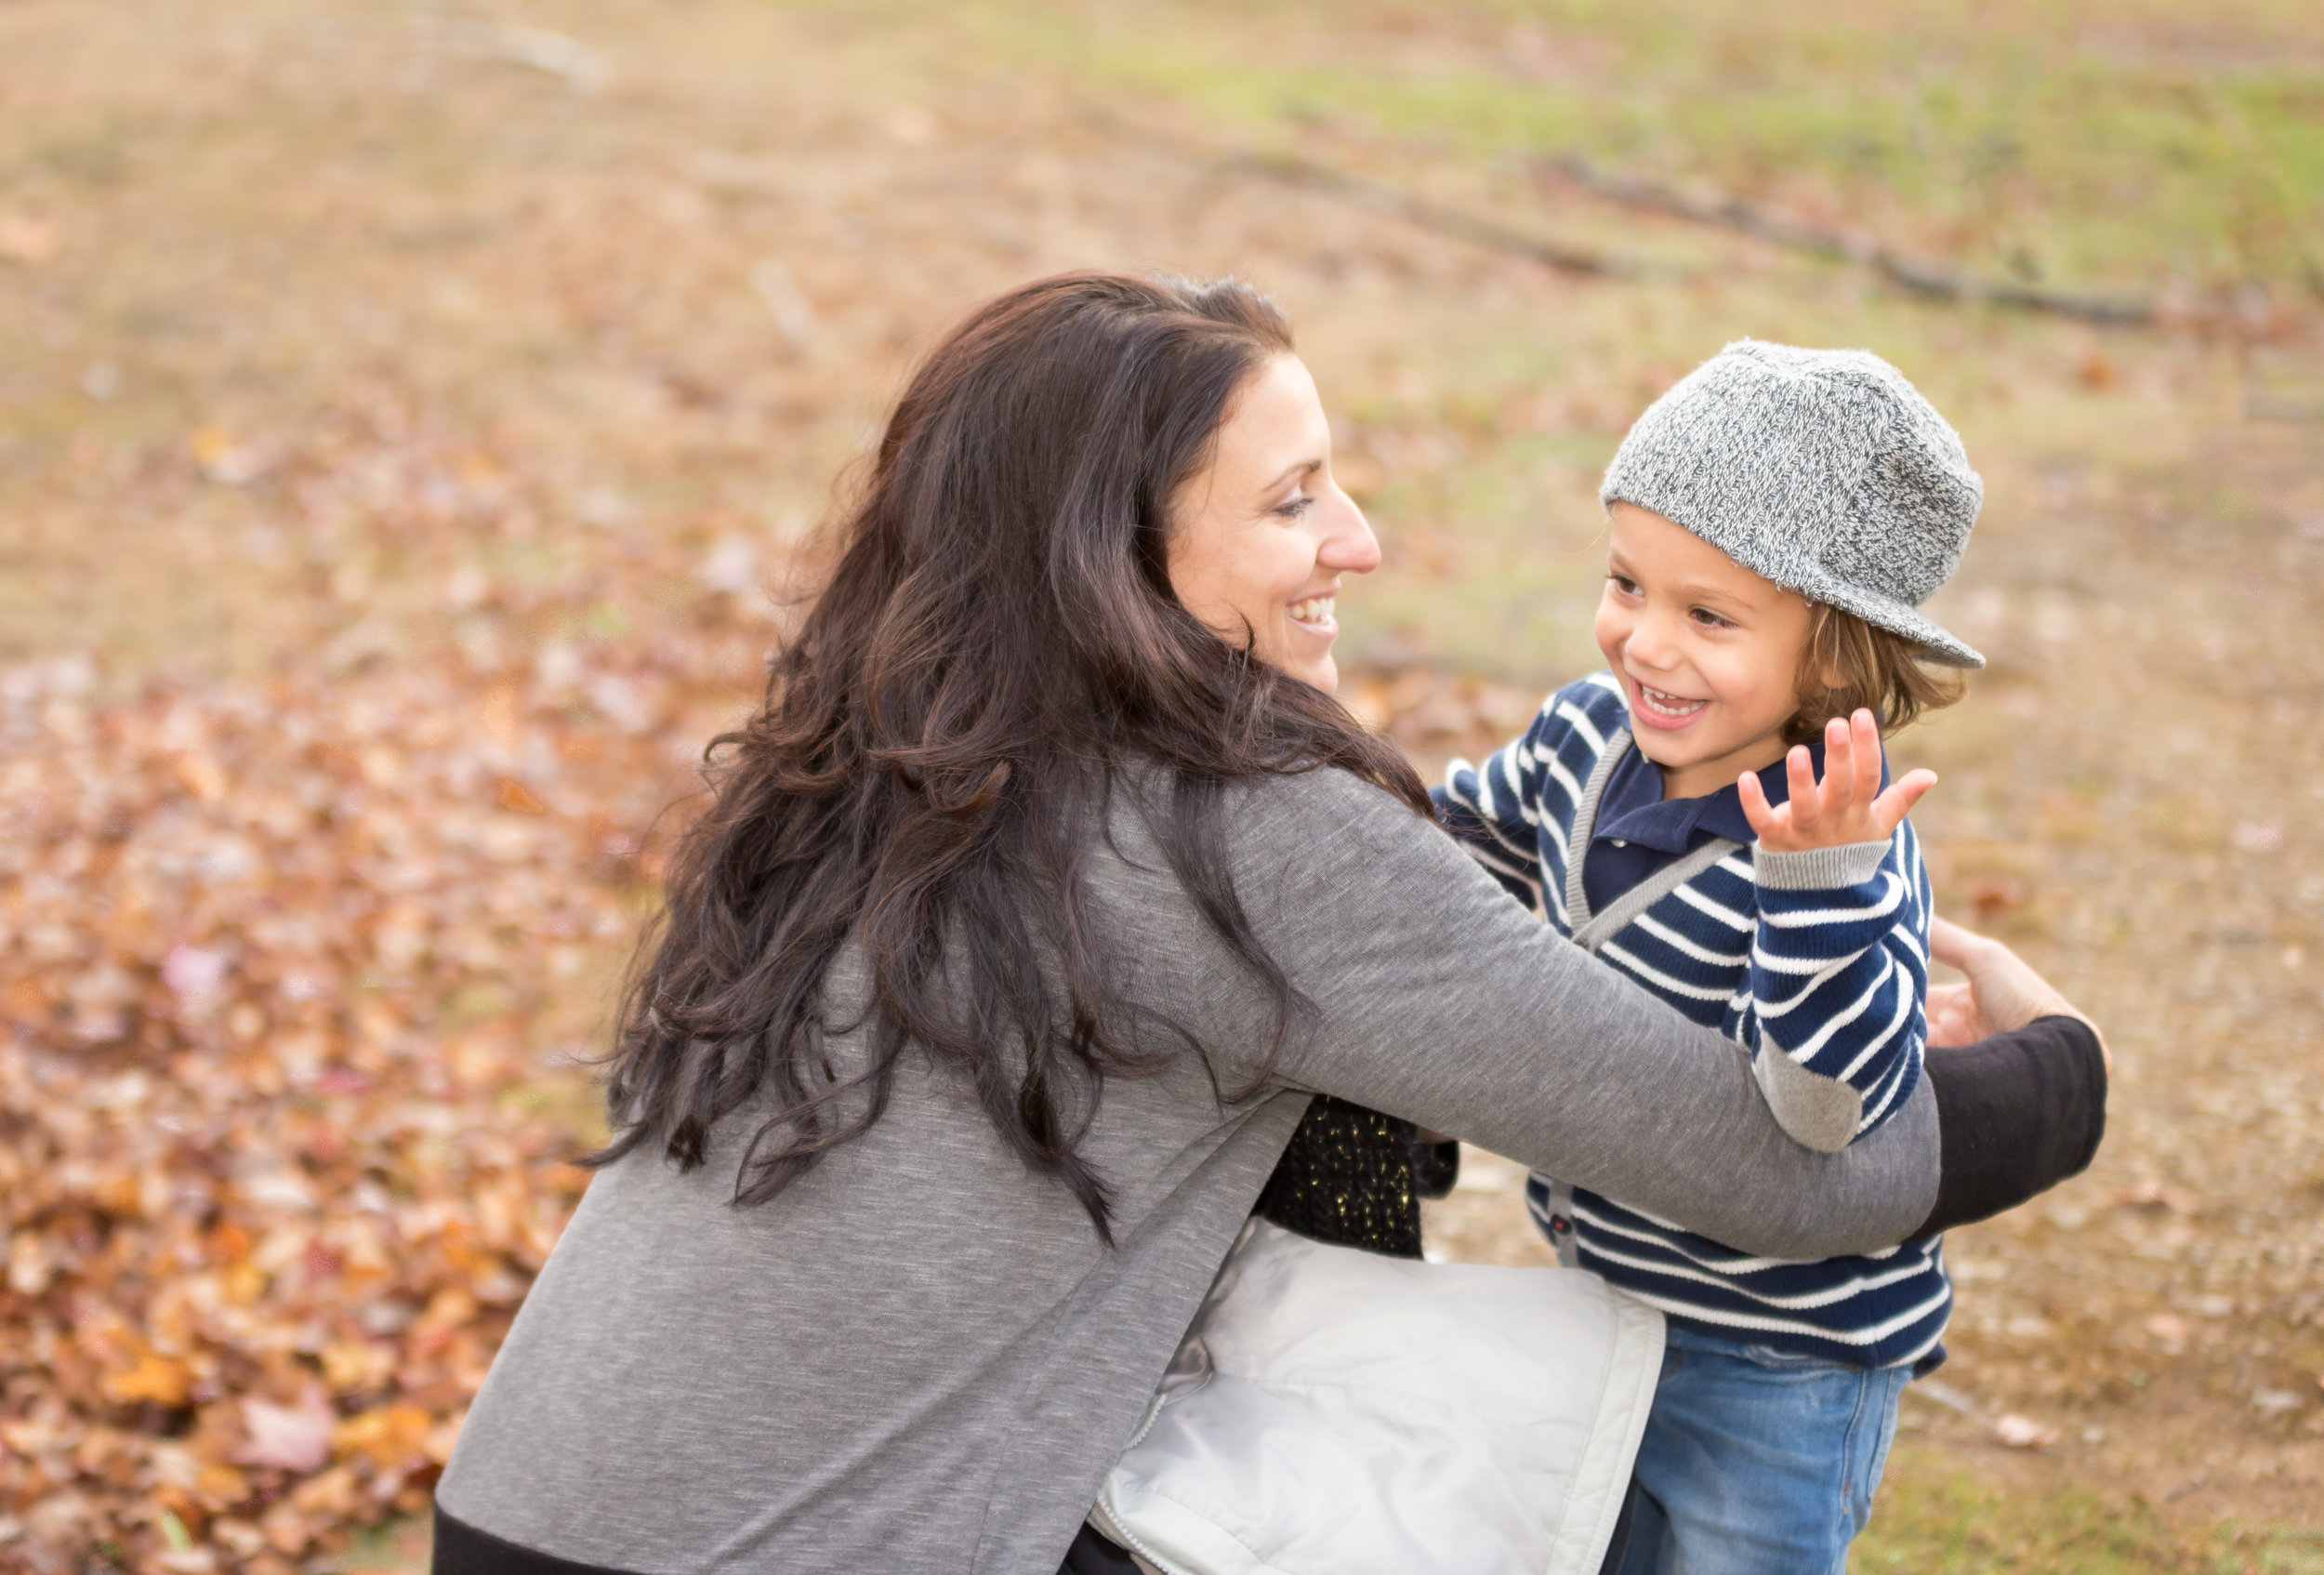 Family photos, taken on location in a relaxed setting, Cosentino Studio will travel to your location Throughout Upstate NY